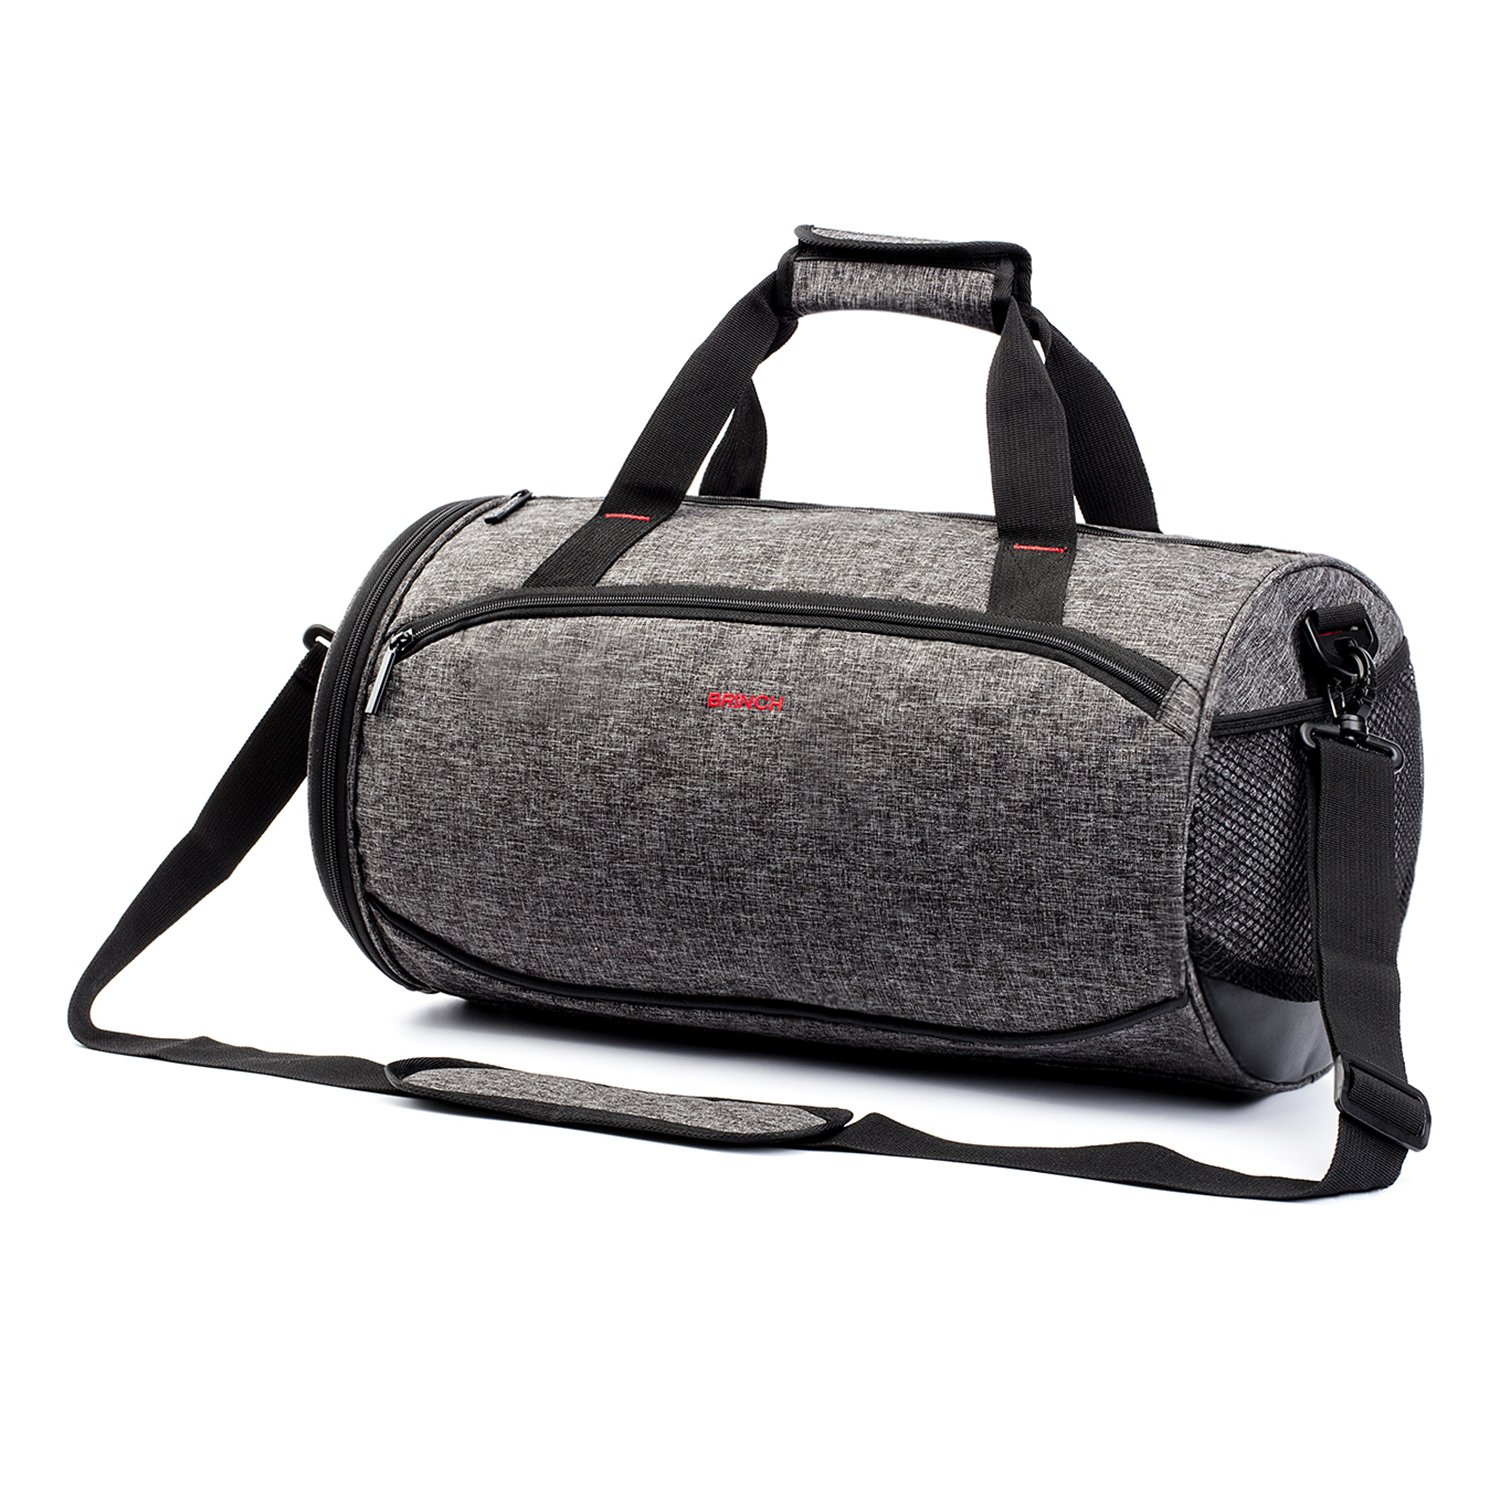 Outdoor Athletic Fitness Travel Gym Duffel Tote Bag with Shoe Compartment Suppets